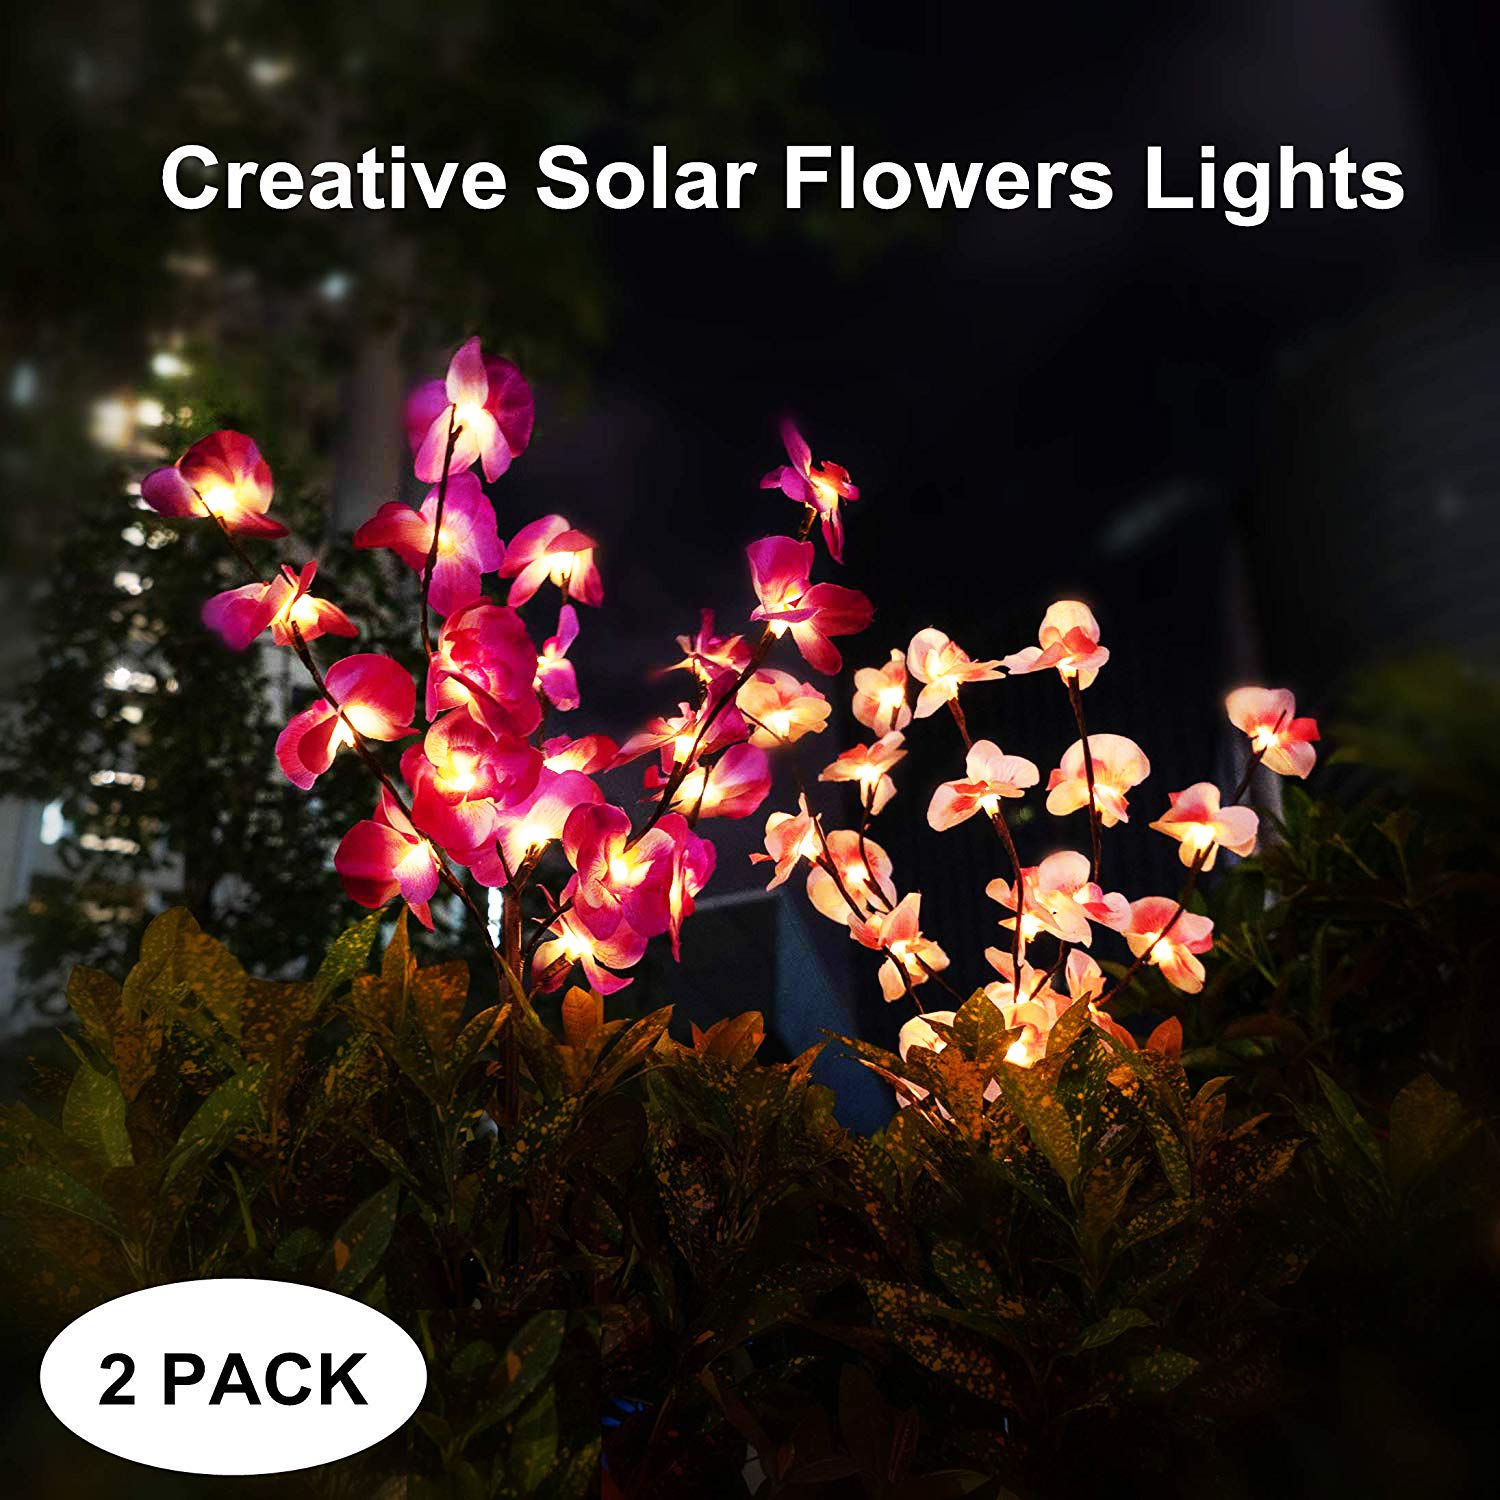 mopha Solar Garden Lights Outdoor Stake LED Flowers Solar Powered Landscape Lights for Pathway,Yard,Patio,Deck,Walkway Christmas Decoration- Two Mode Solar Flowers Lights by mopha